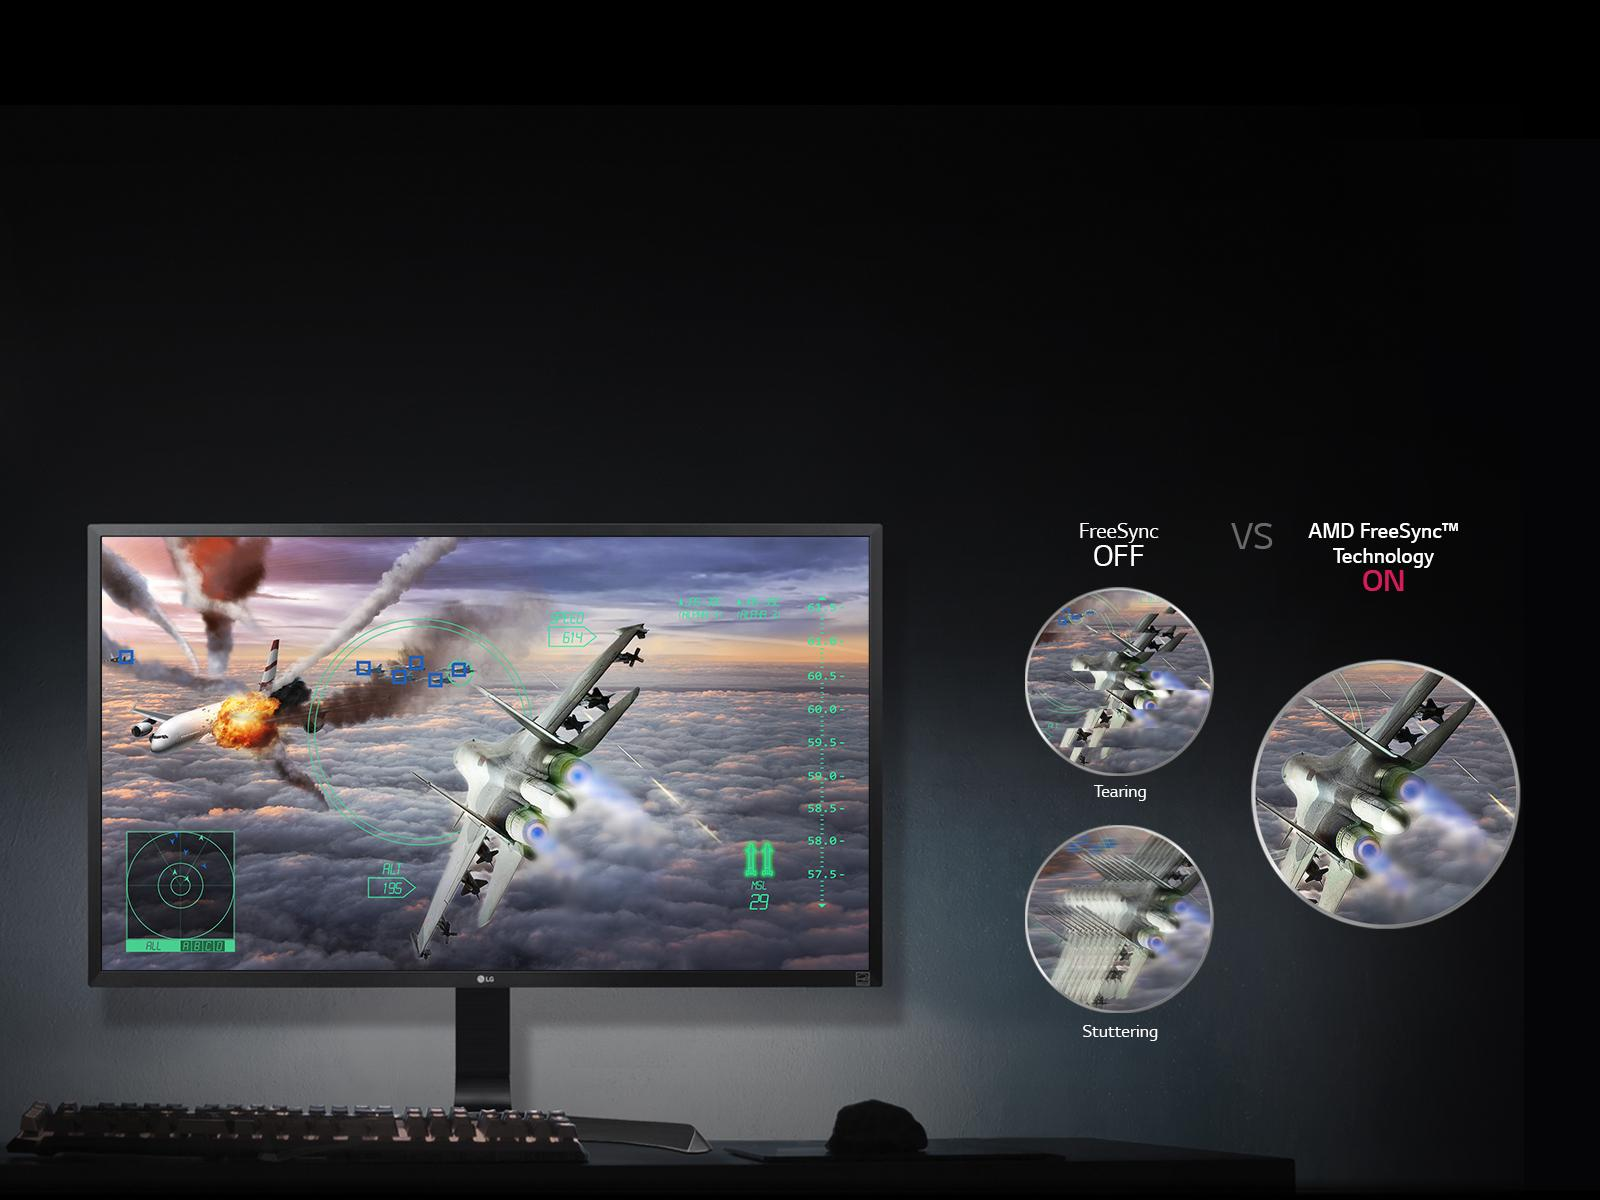 AMD FreeSync™ Technology